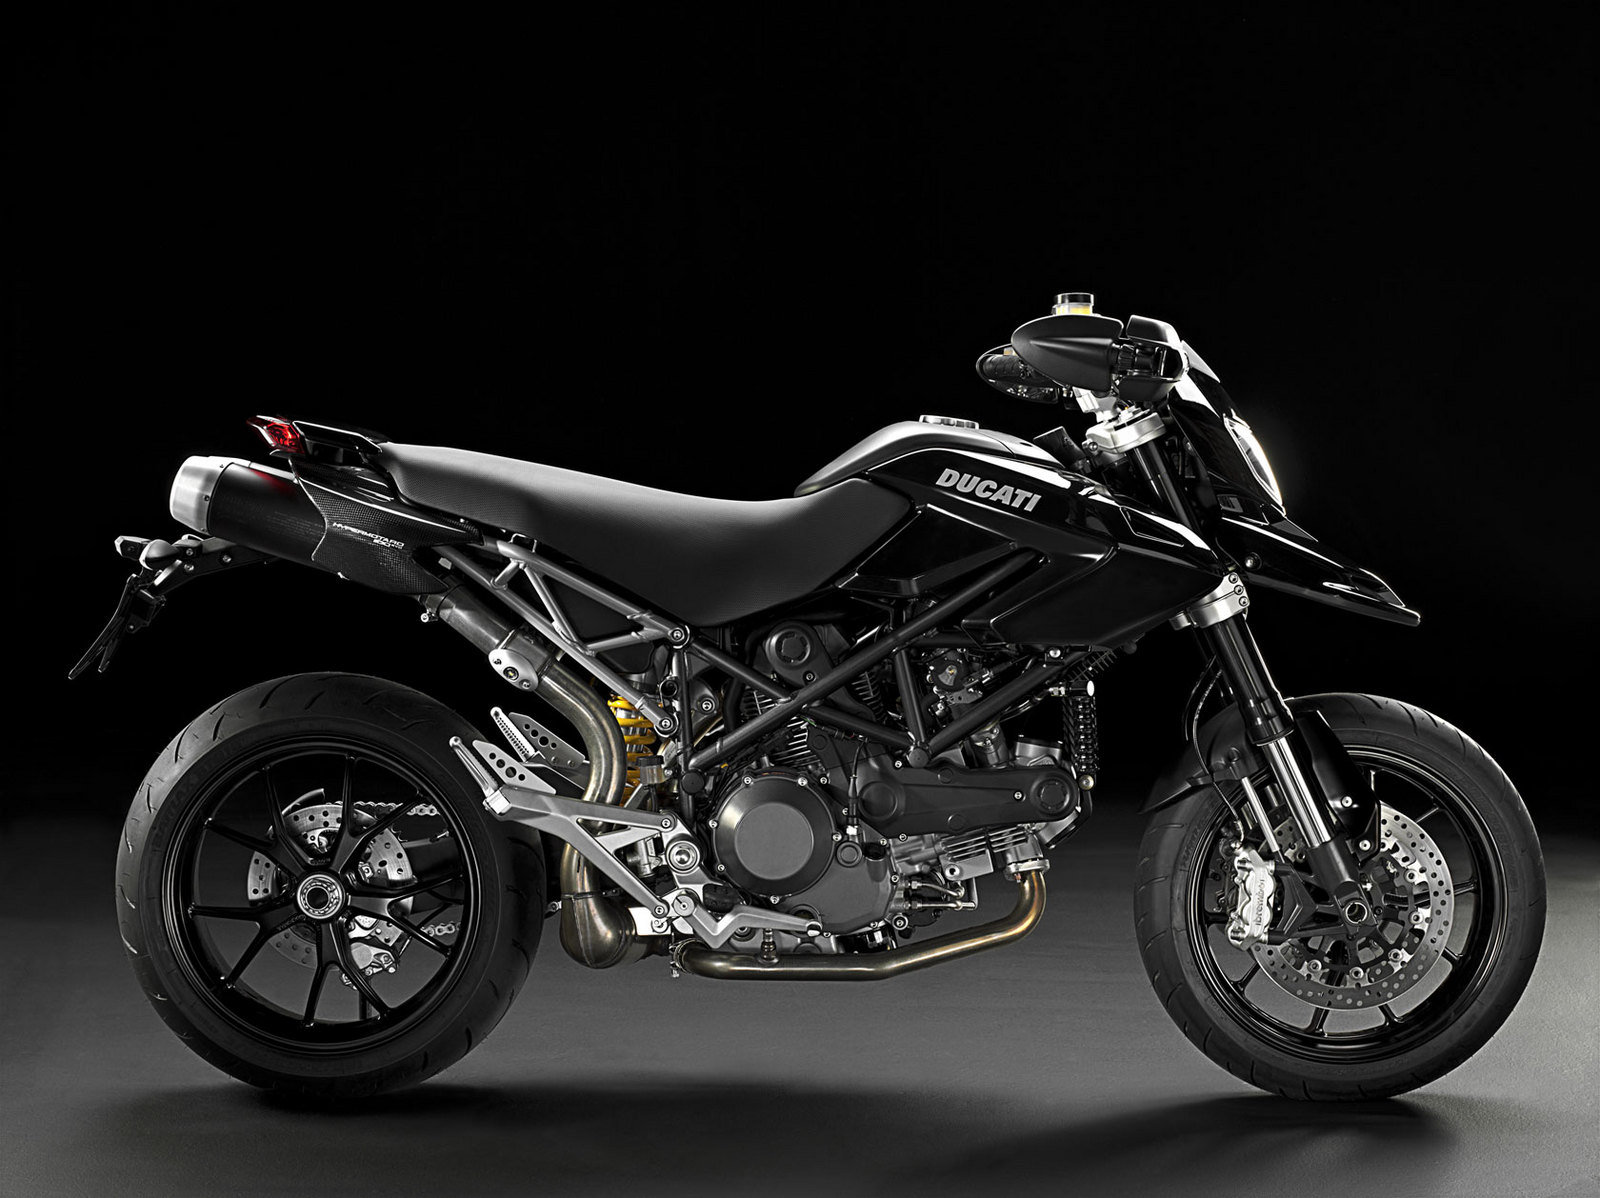 2010 ducati hypermotard 1100 evo evo sp picture 351817 motorcycle review top speed. Black Bedroom Furniture Sets. Home Design Ideas